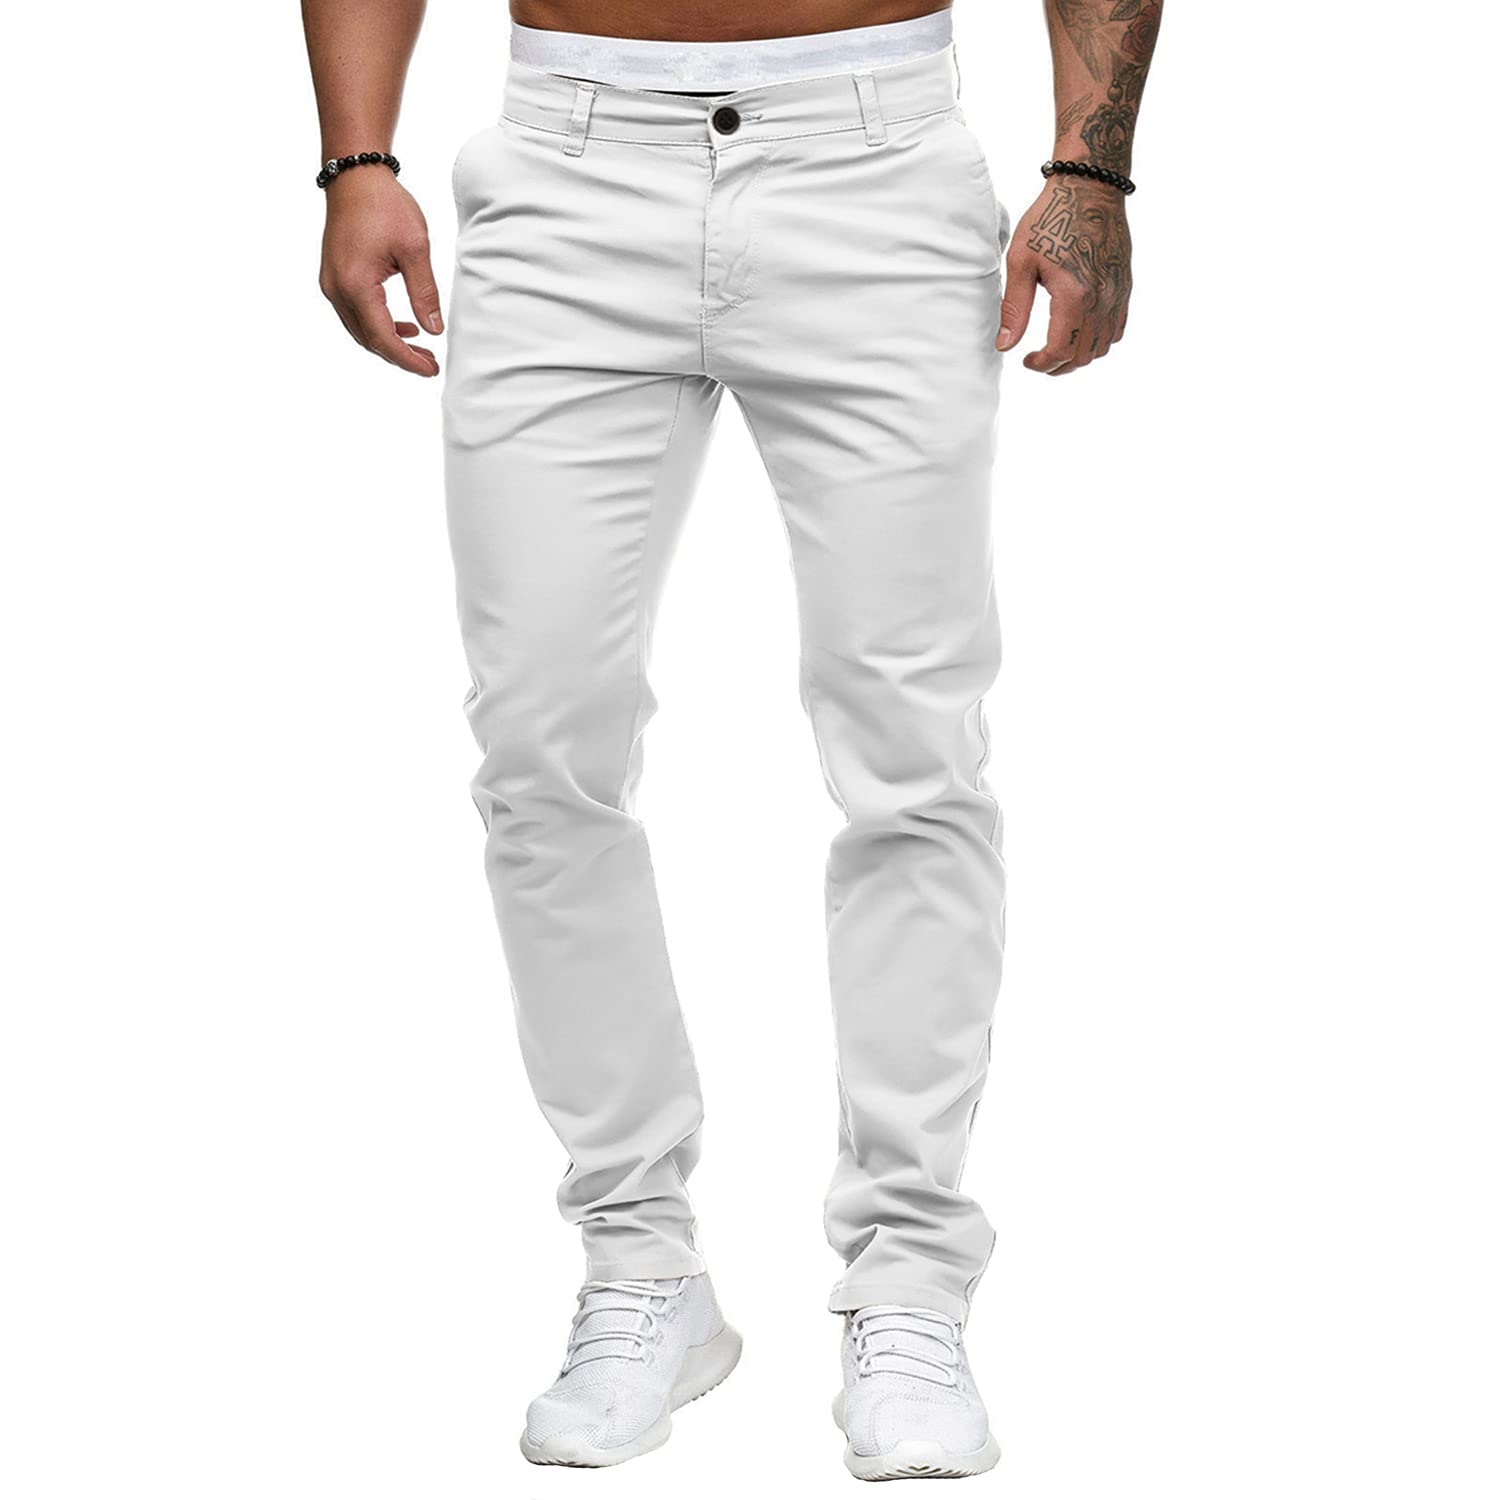 Men's Straight Personality Trendy Casual Pants Cotton Slim Fit Leg Fashion Pants Stylish Stretch Skinny Pencil Trousers (White,Large)